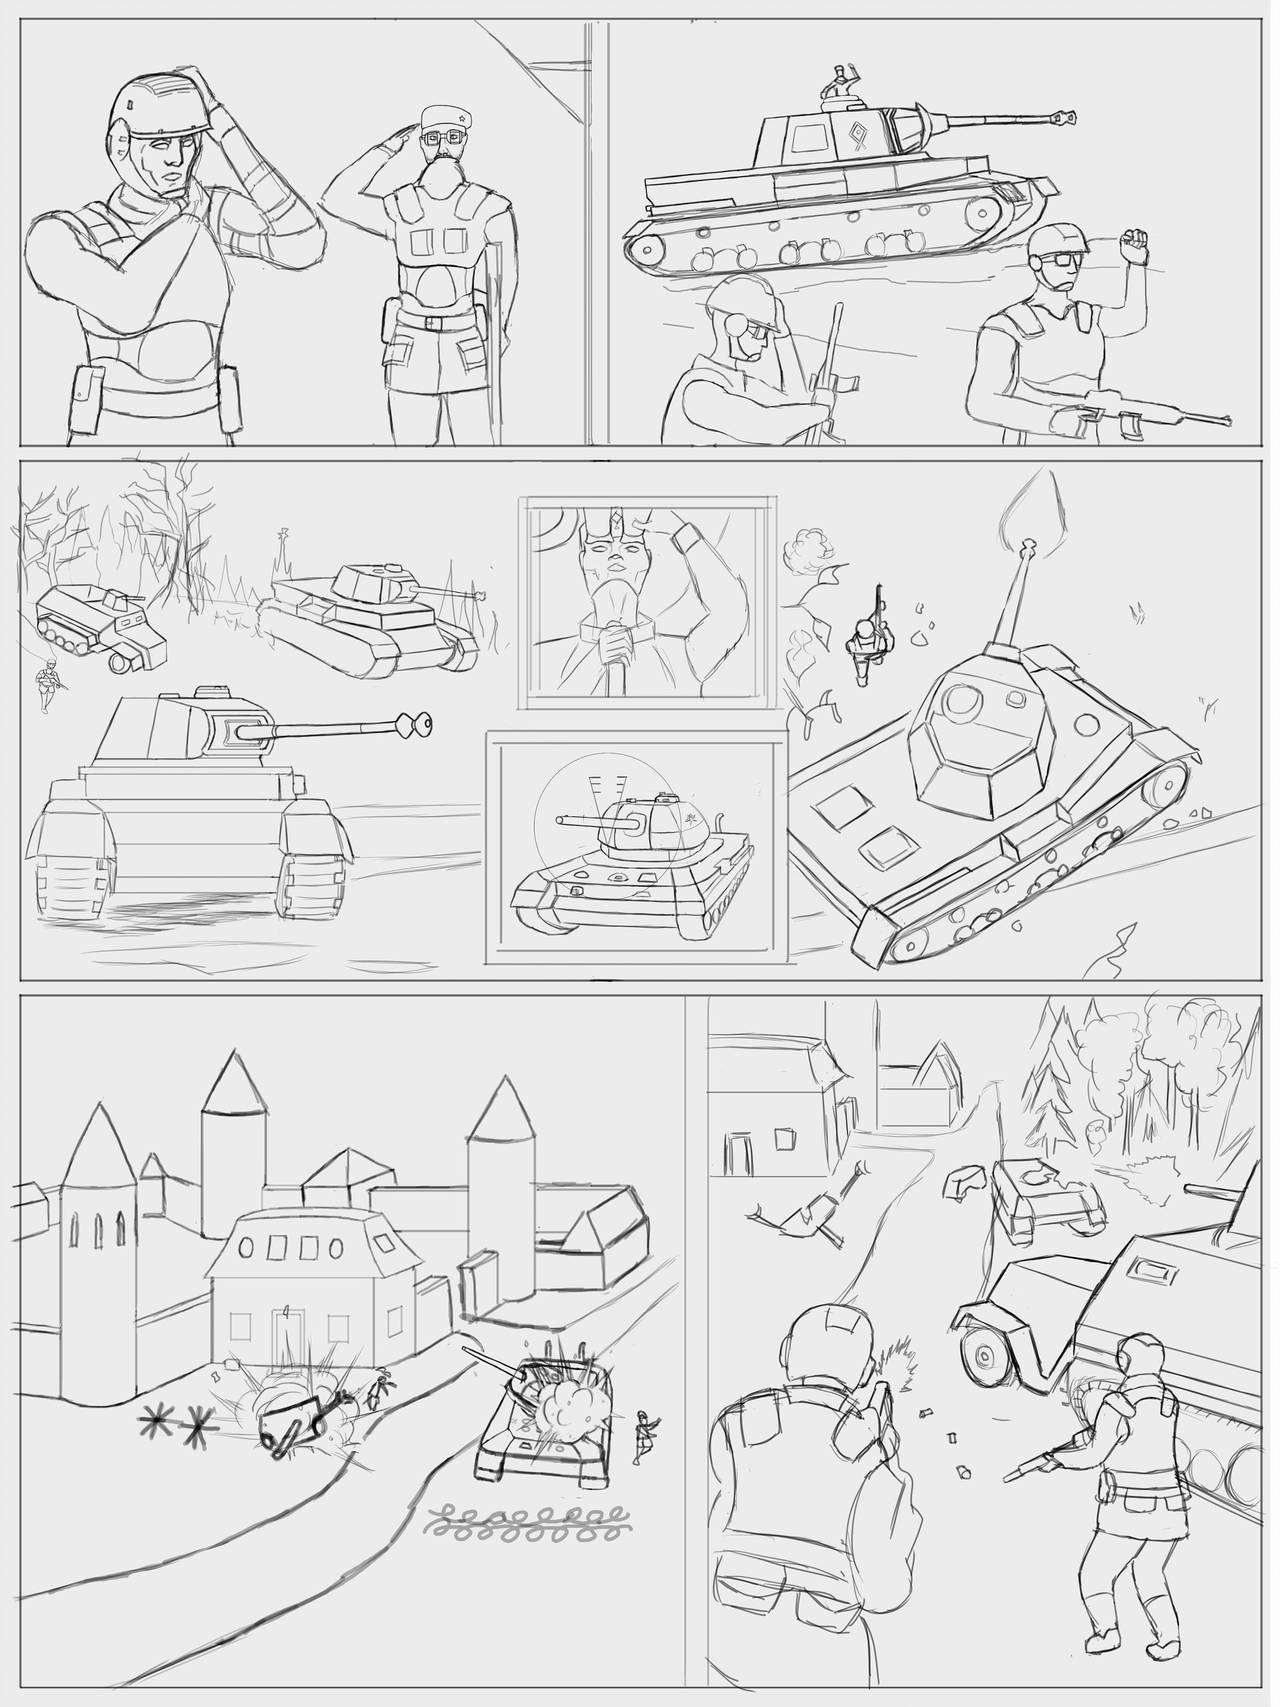 tank_comic_1_by_medjugore_dcwsgqw-fullview